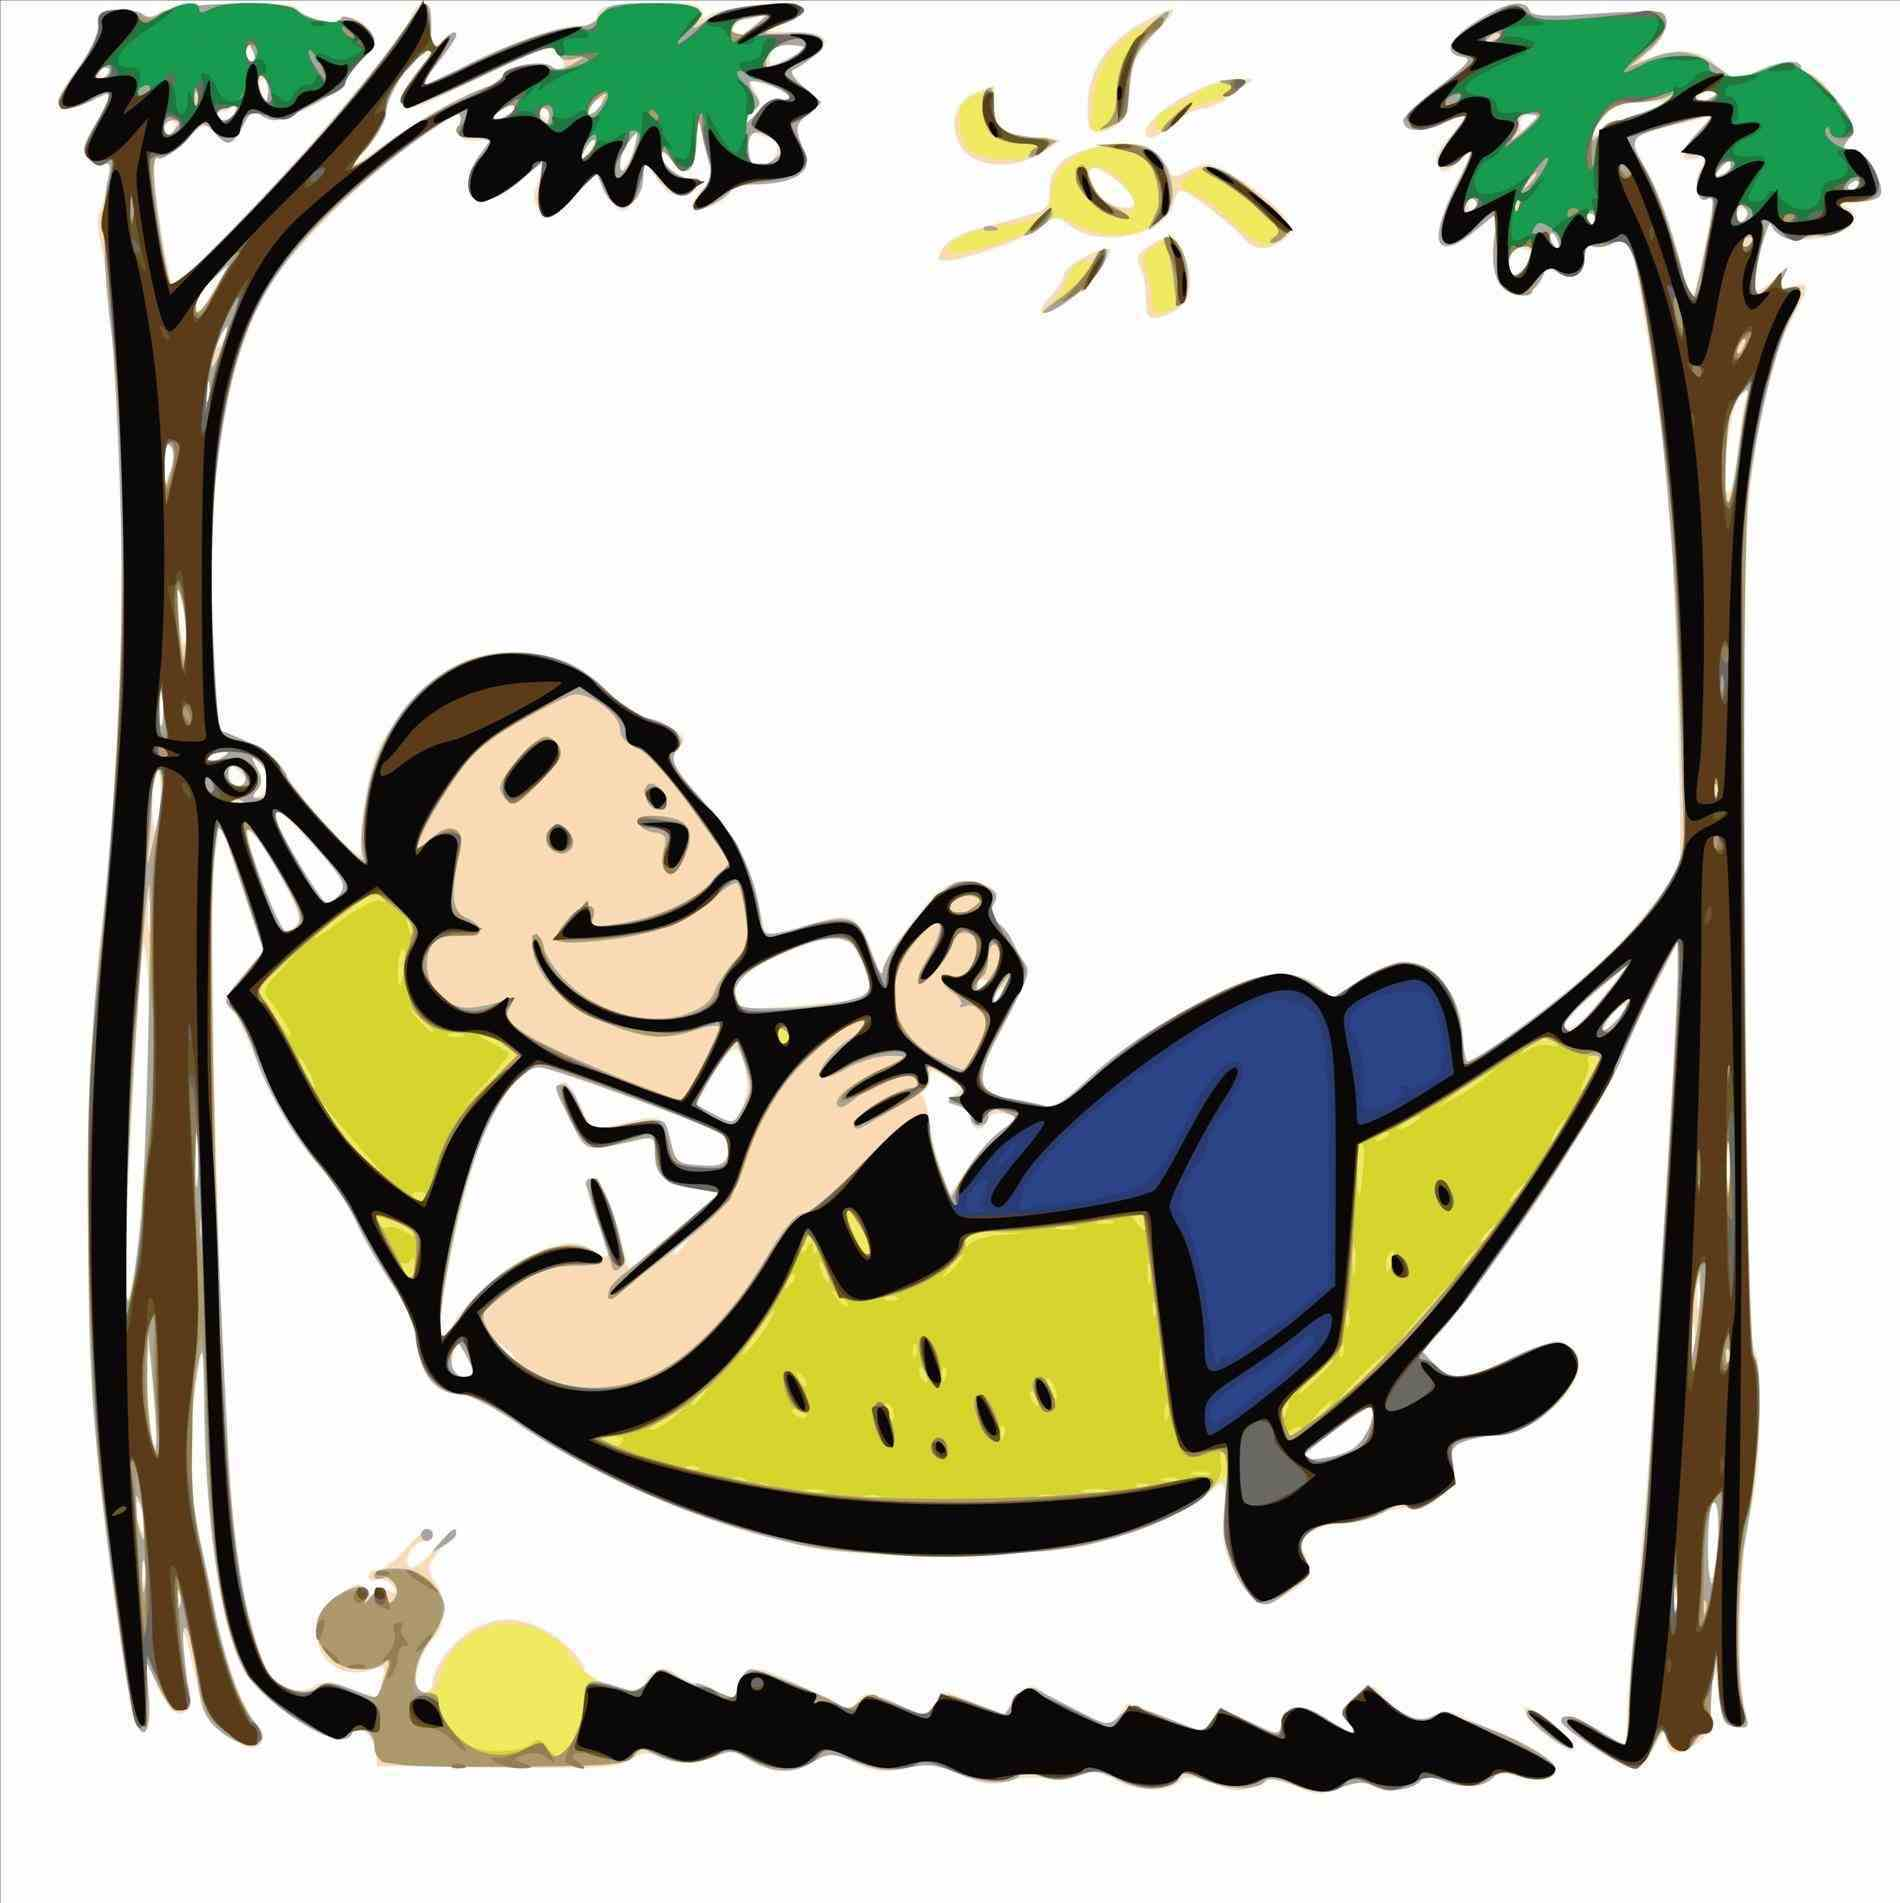 Relaxed clipart clipart images gallery for free download.